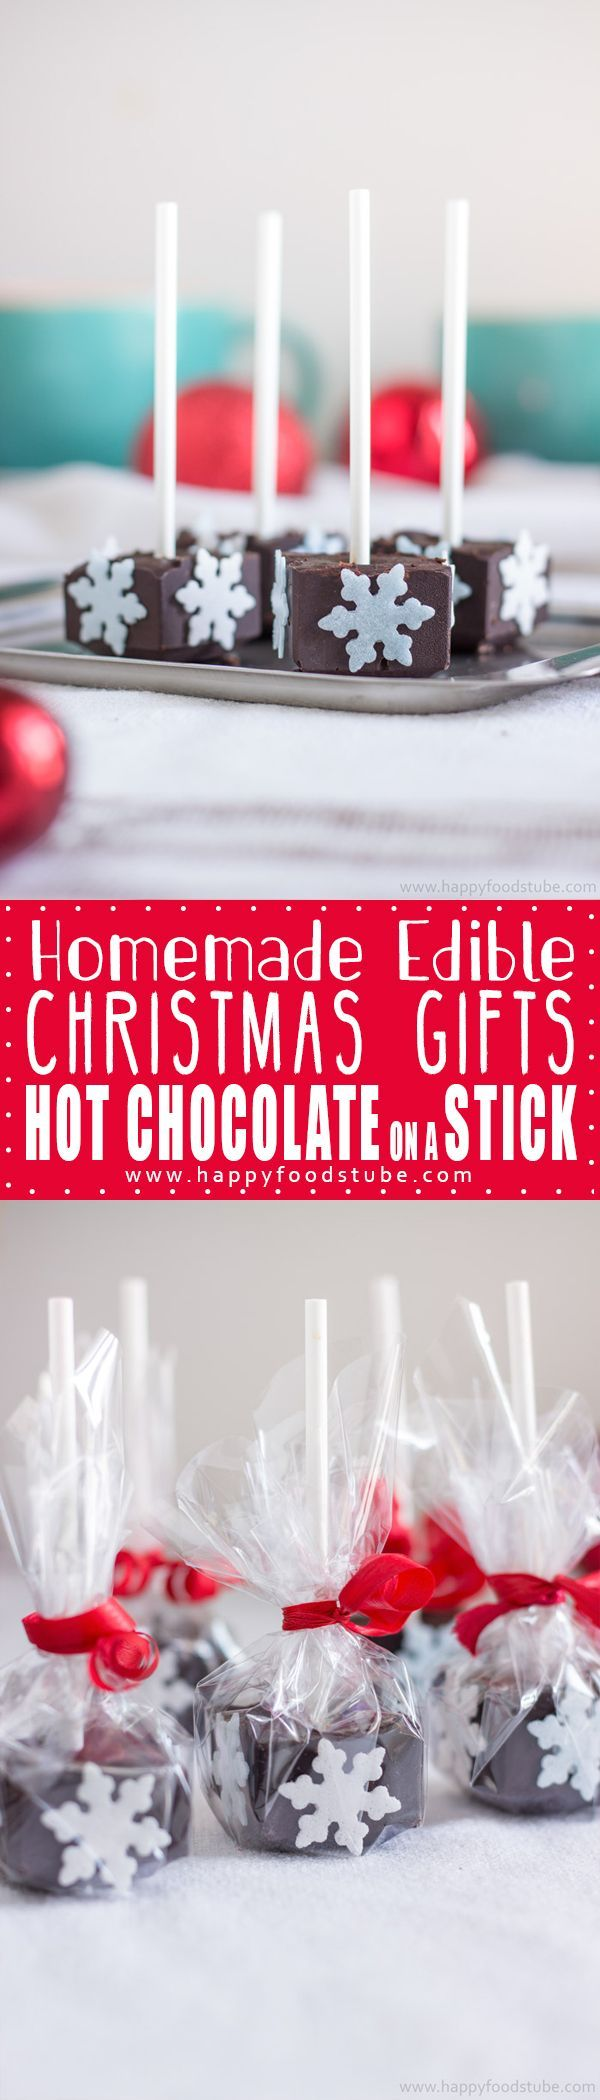 Recipe for Homemade Hot Chocolate Sticks wrapped in cellophane will make a great edible gift not only for Christmas. Stir it in steamed milk and enjoy! | happyfoodstube.com